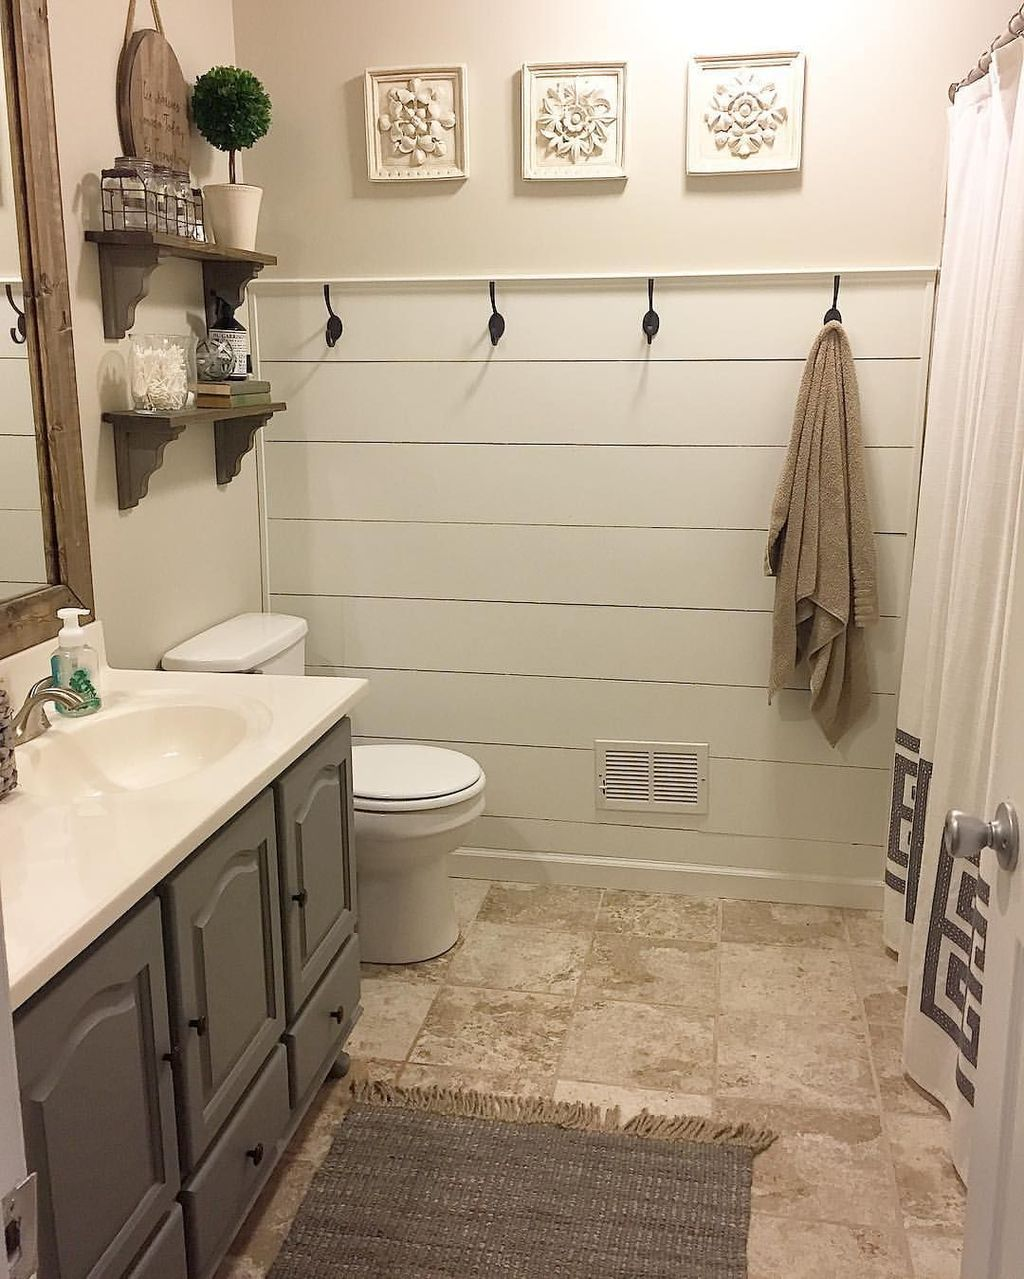 45 modern farmhouse bathroom makeover decor ideas – Best Home Decorating Ideas - Page 29